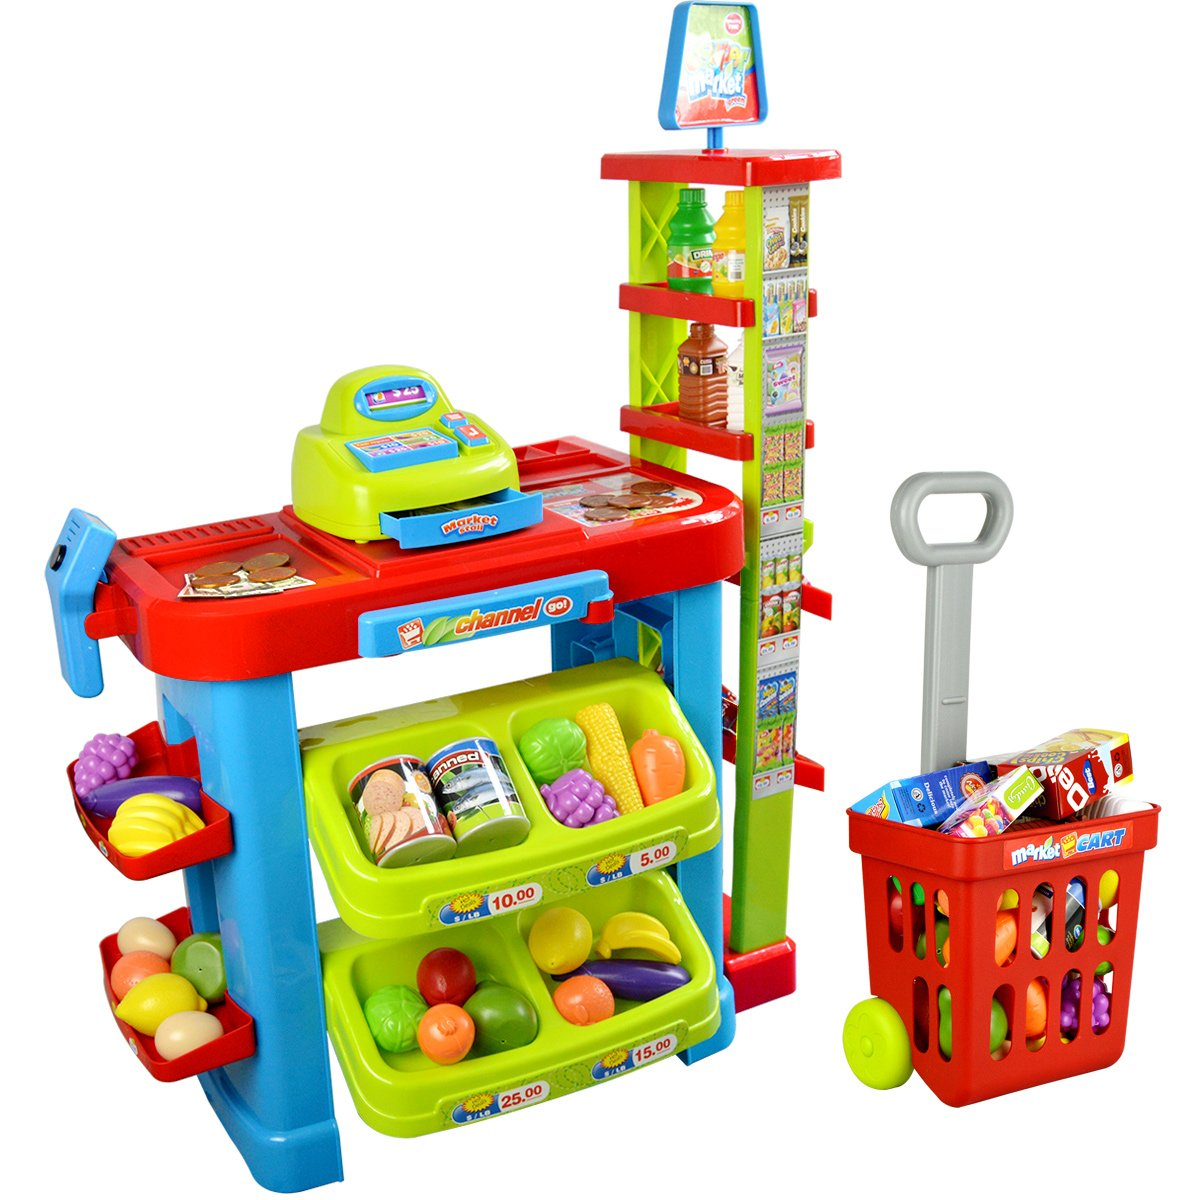 PowerTRC® Fun Super Market Pretend Play Toy Market Play Set with Toy Cash Register, Working Scanner, Shopping Cart, Pretend Food and Money by PowerTRC (Image #1)